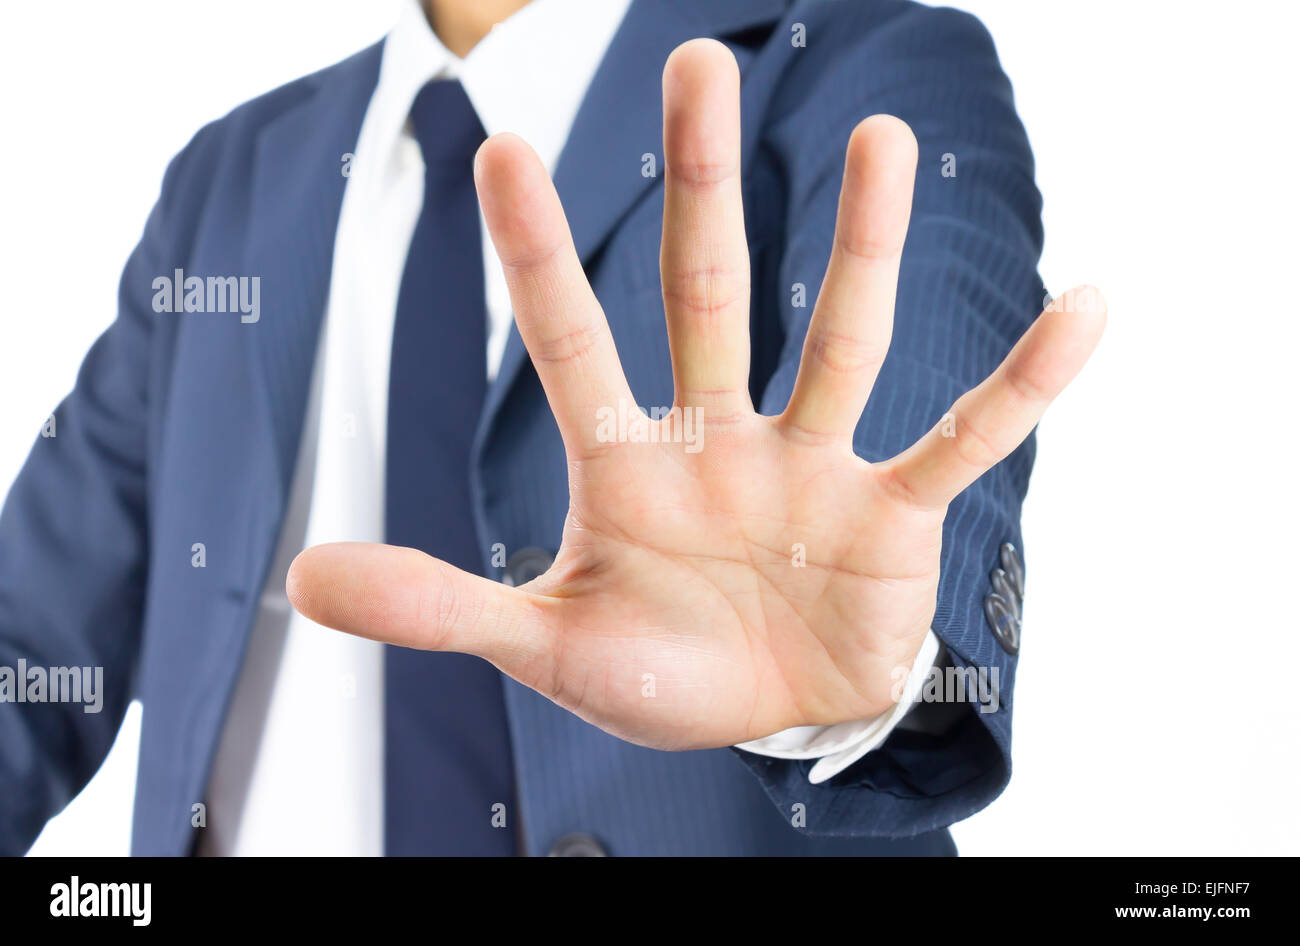 Businessman in Blue Suit Show Stop Sign of Hand Isolated on White Background. Concept about Stopping or Prevent. - Stock Image